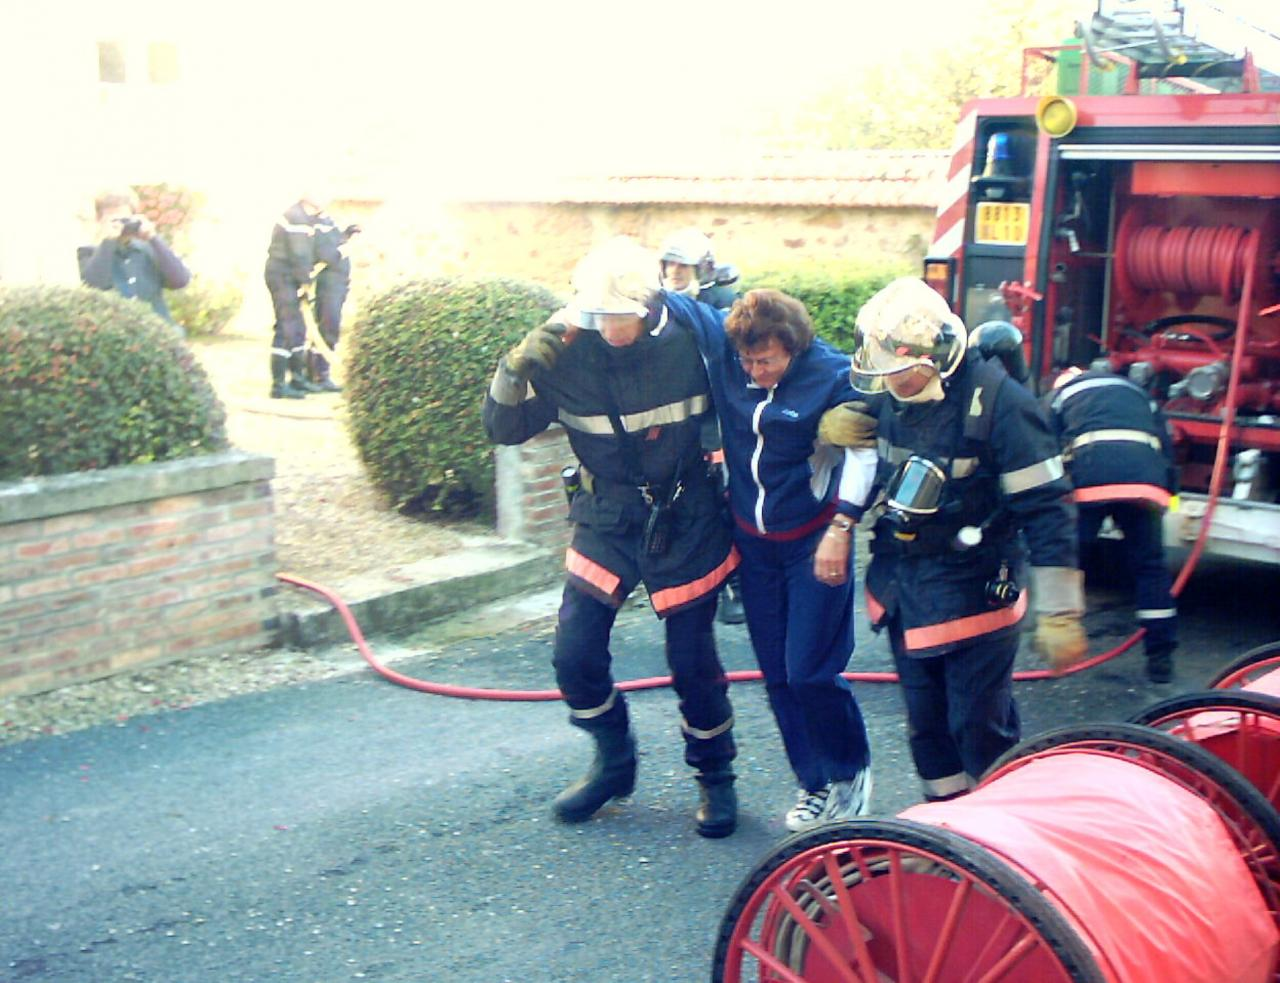 intervention des pompiers à la mairie-10